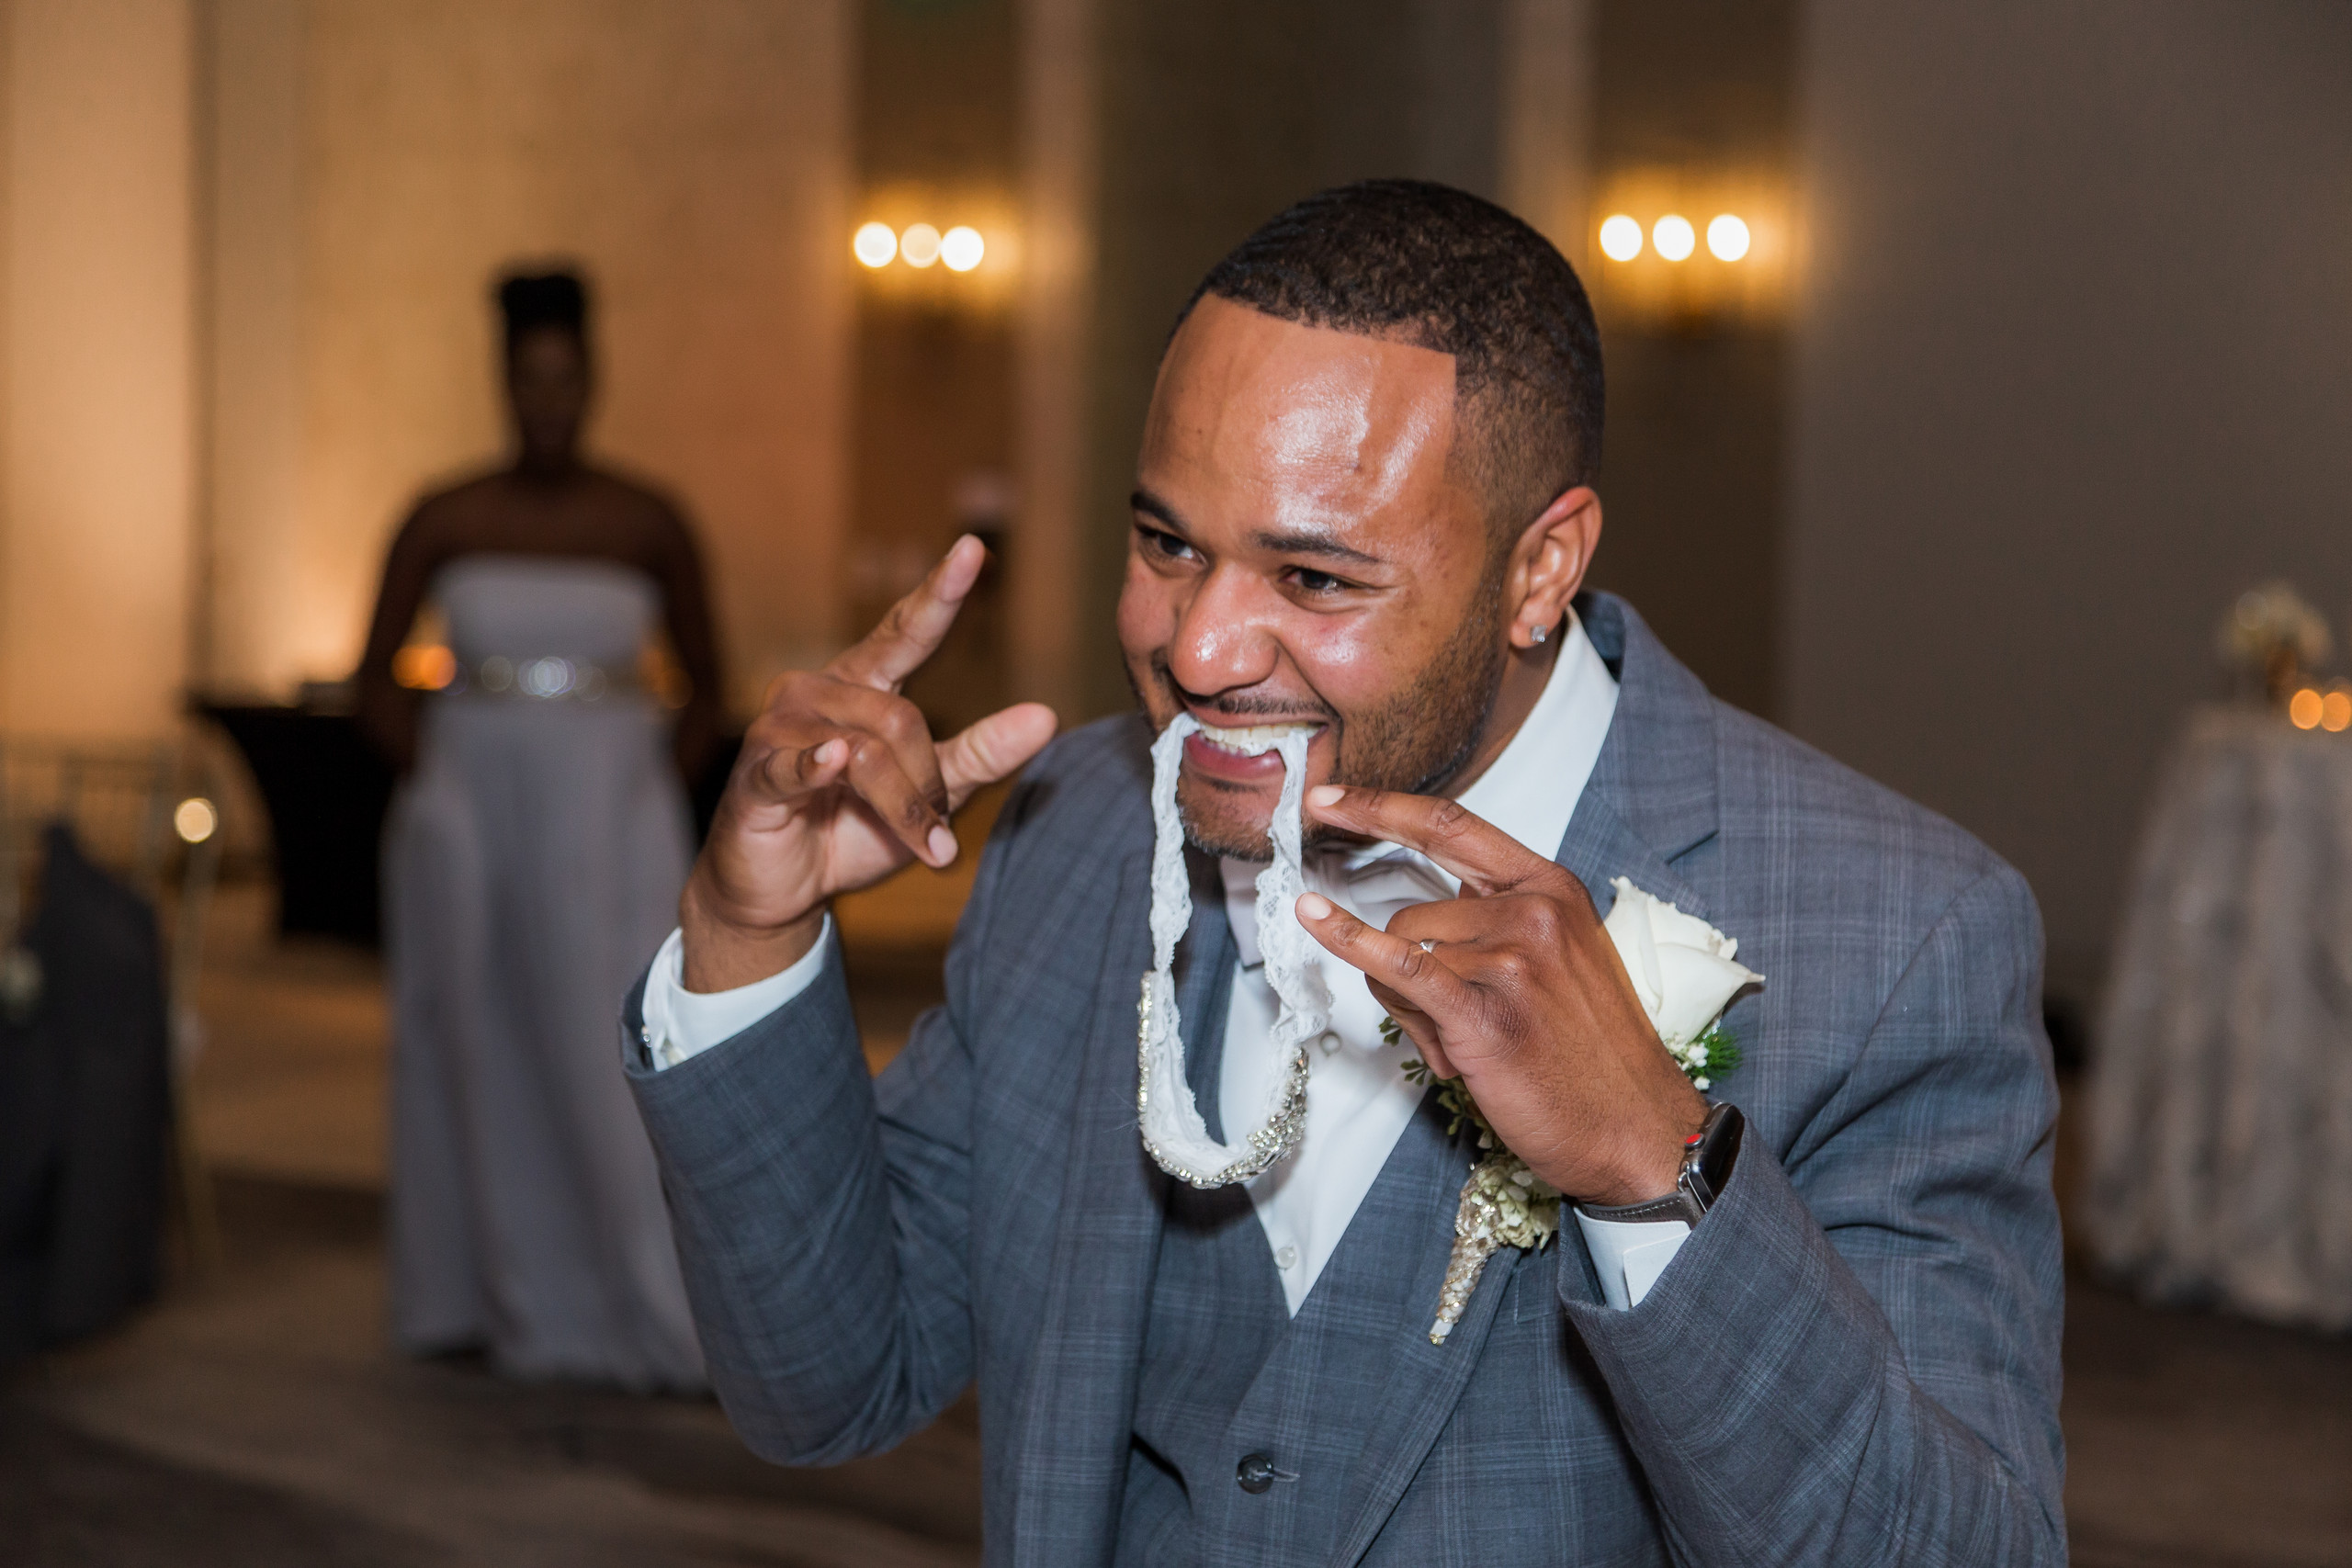 The groom playfully posing with the bride's garter during the wedding reception at the Hilton Main in Norfolk, Virginia.